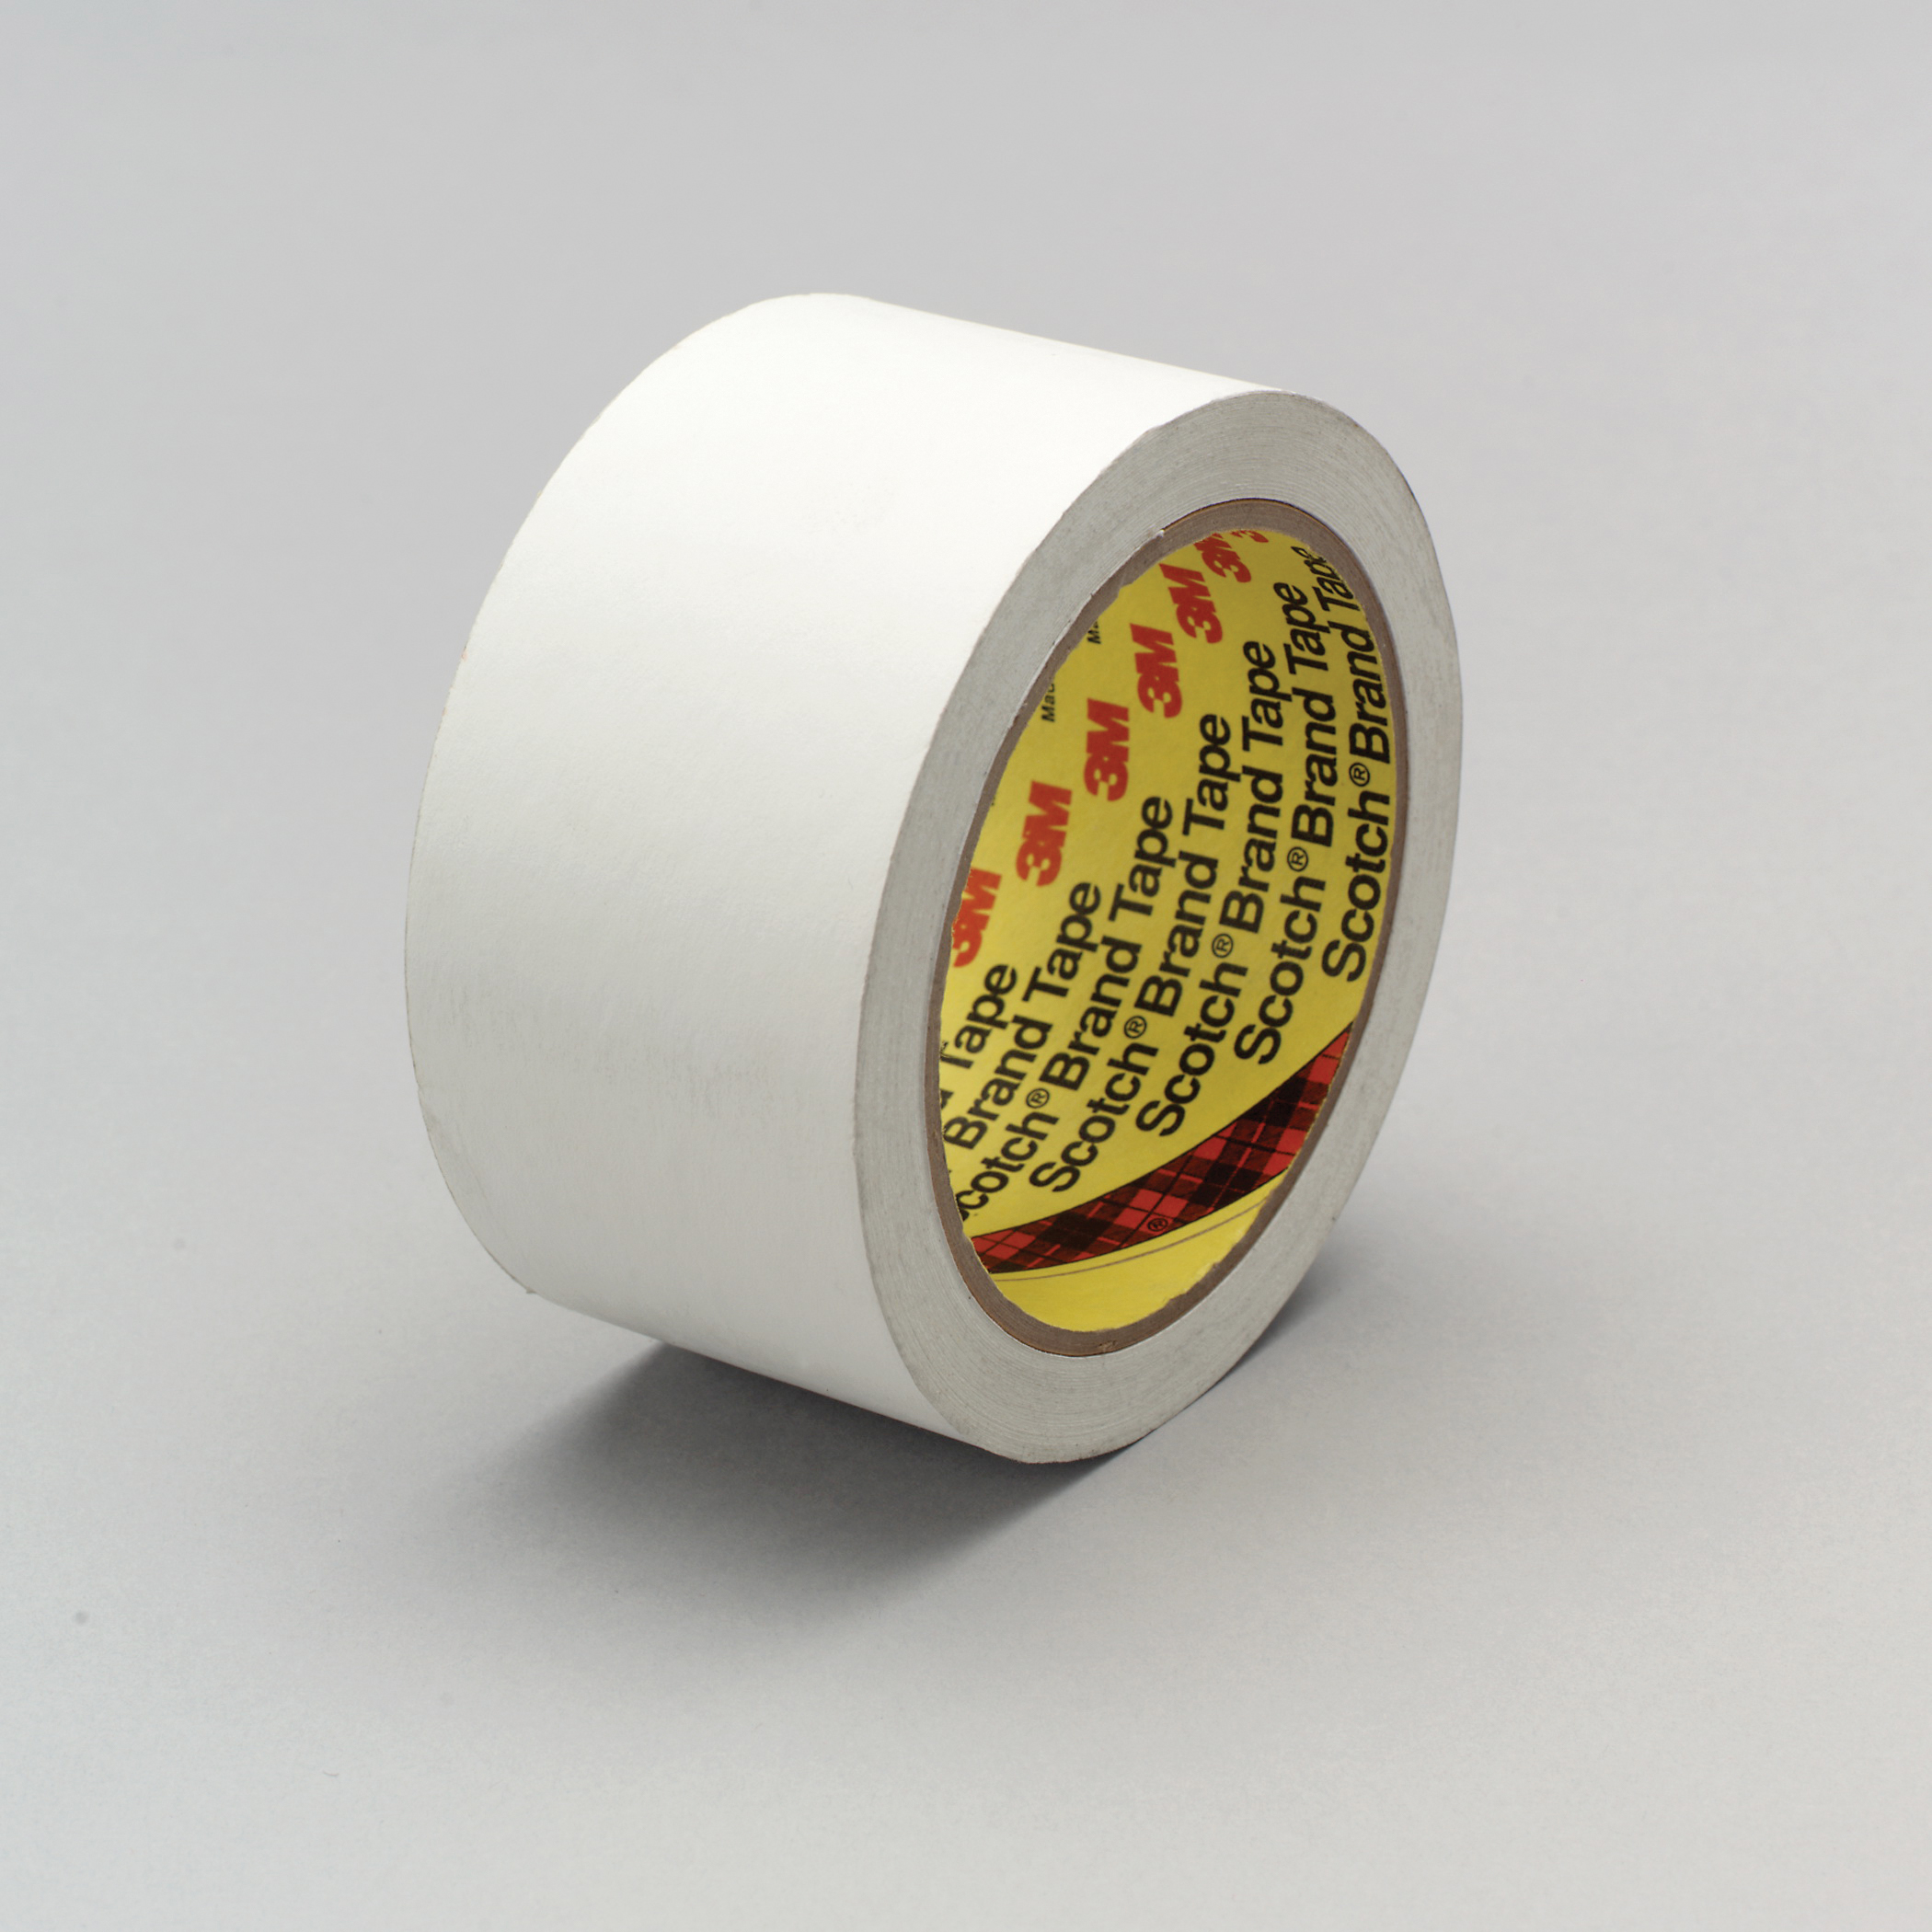 3M™ 021200-86008 3051 Low Tack Tape, 36 yd L x 1/2 in W, 3.8 mil THK, Acrylic Adhesive, Flatback Paper Backing